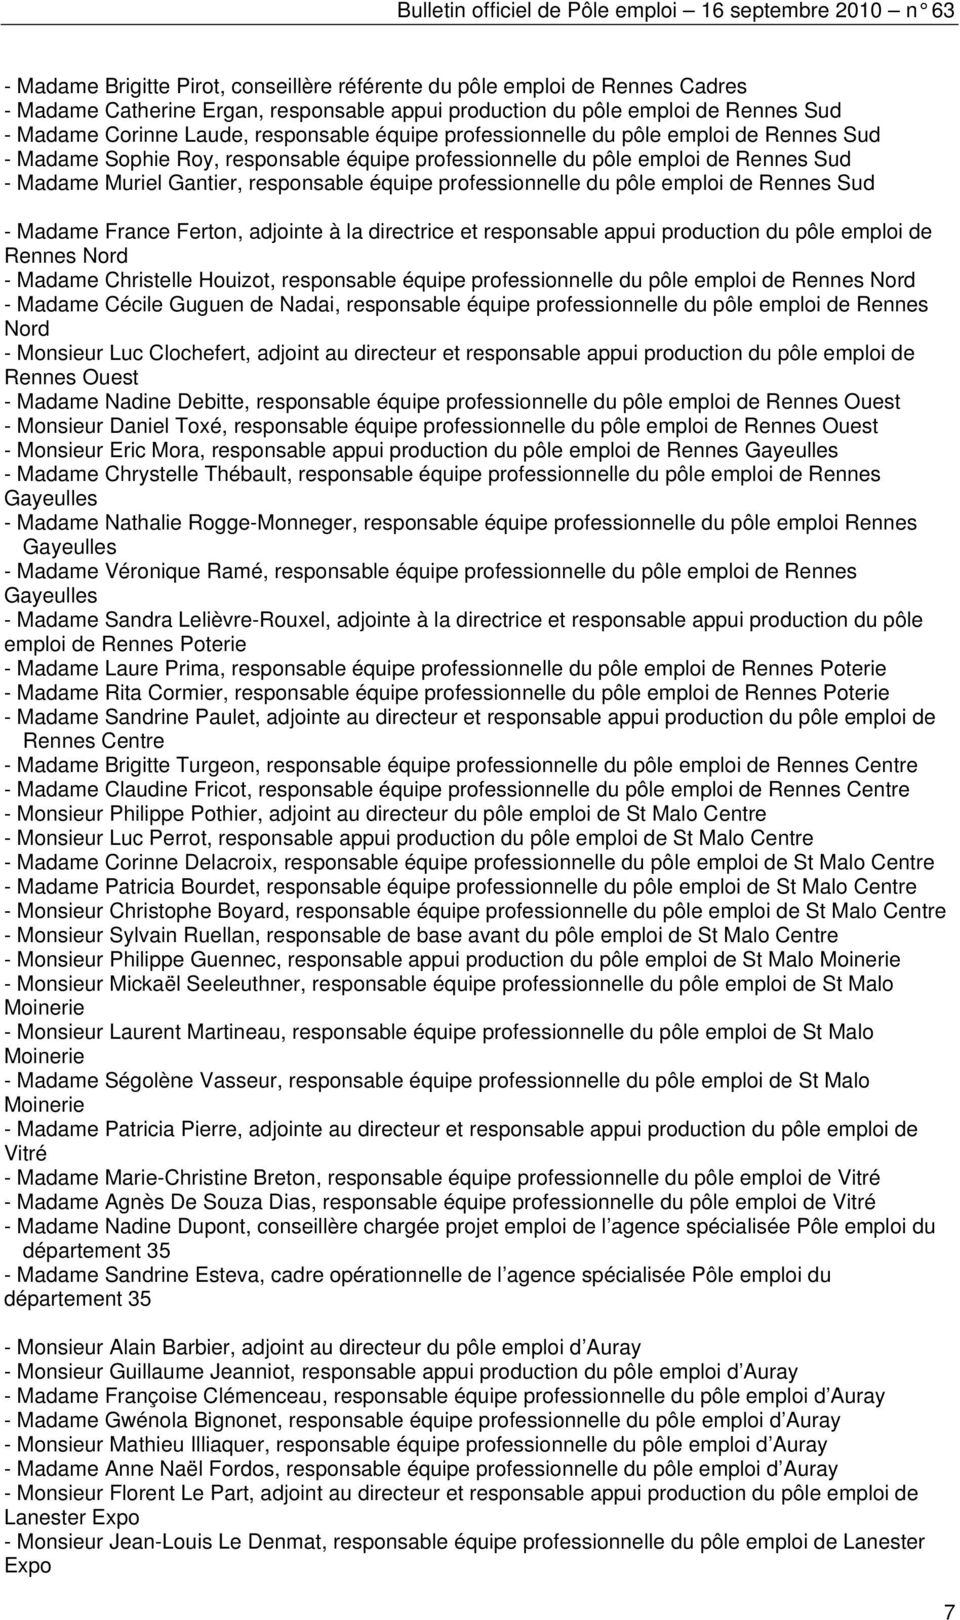 Bulletin Officiel De Pole Emploi Pdf